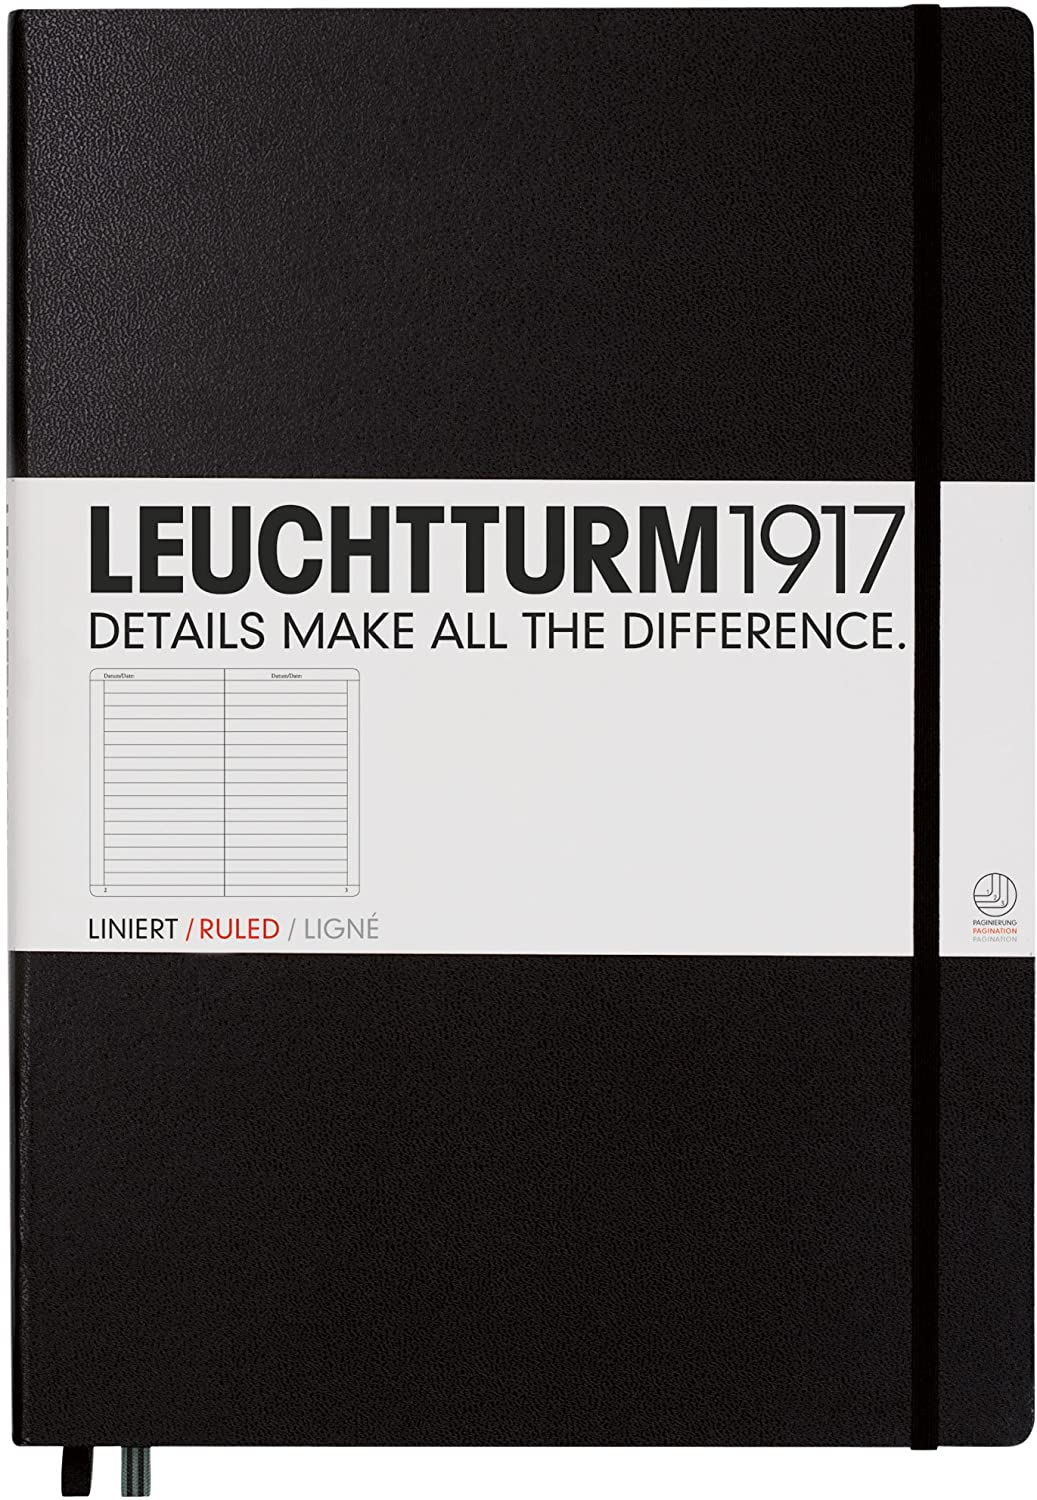 Leuchtturm1917 Master A4 Plus Ruled Hardcover Notebook- 233 Numbered Pages, Black